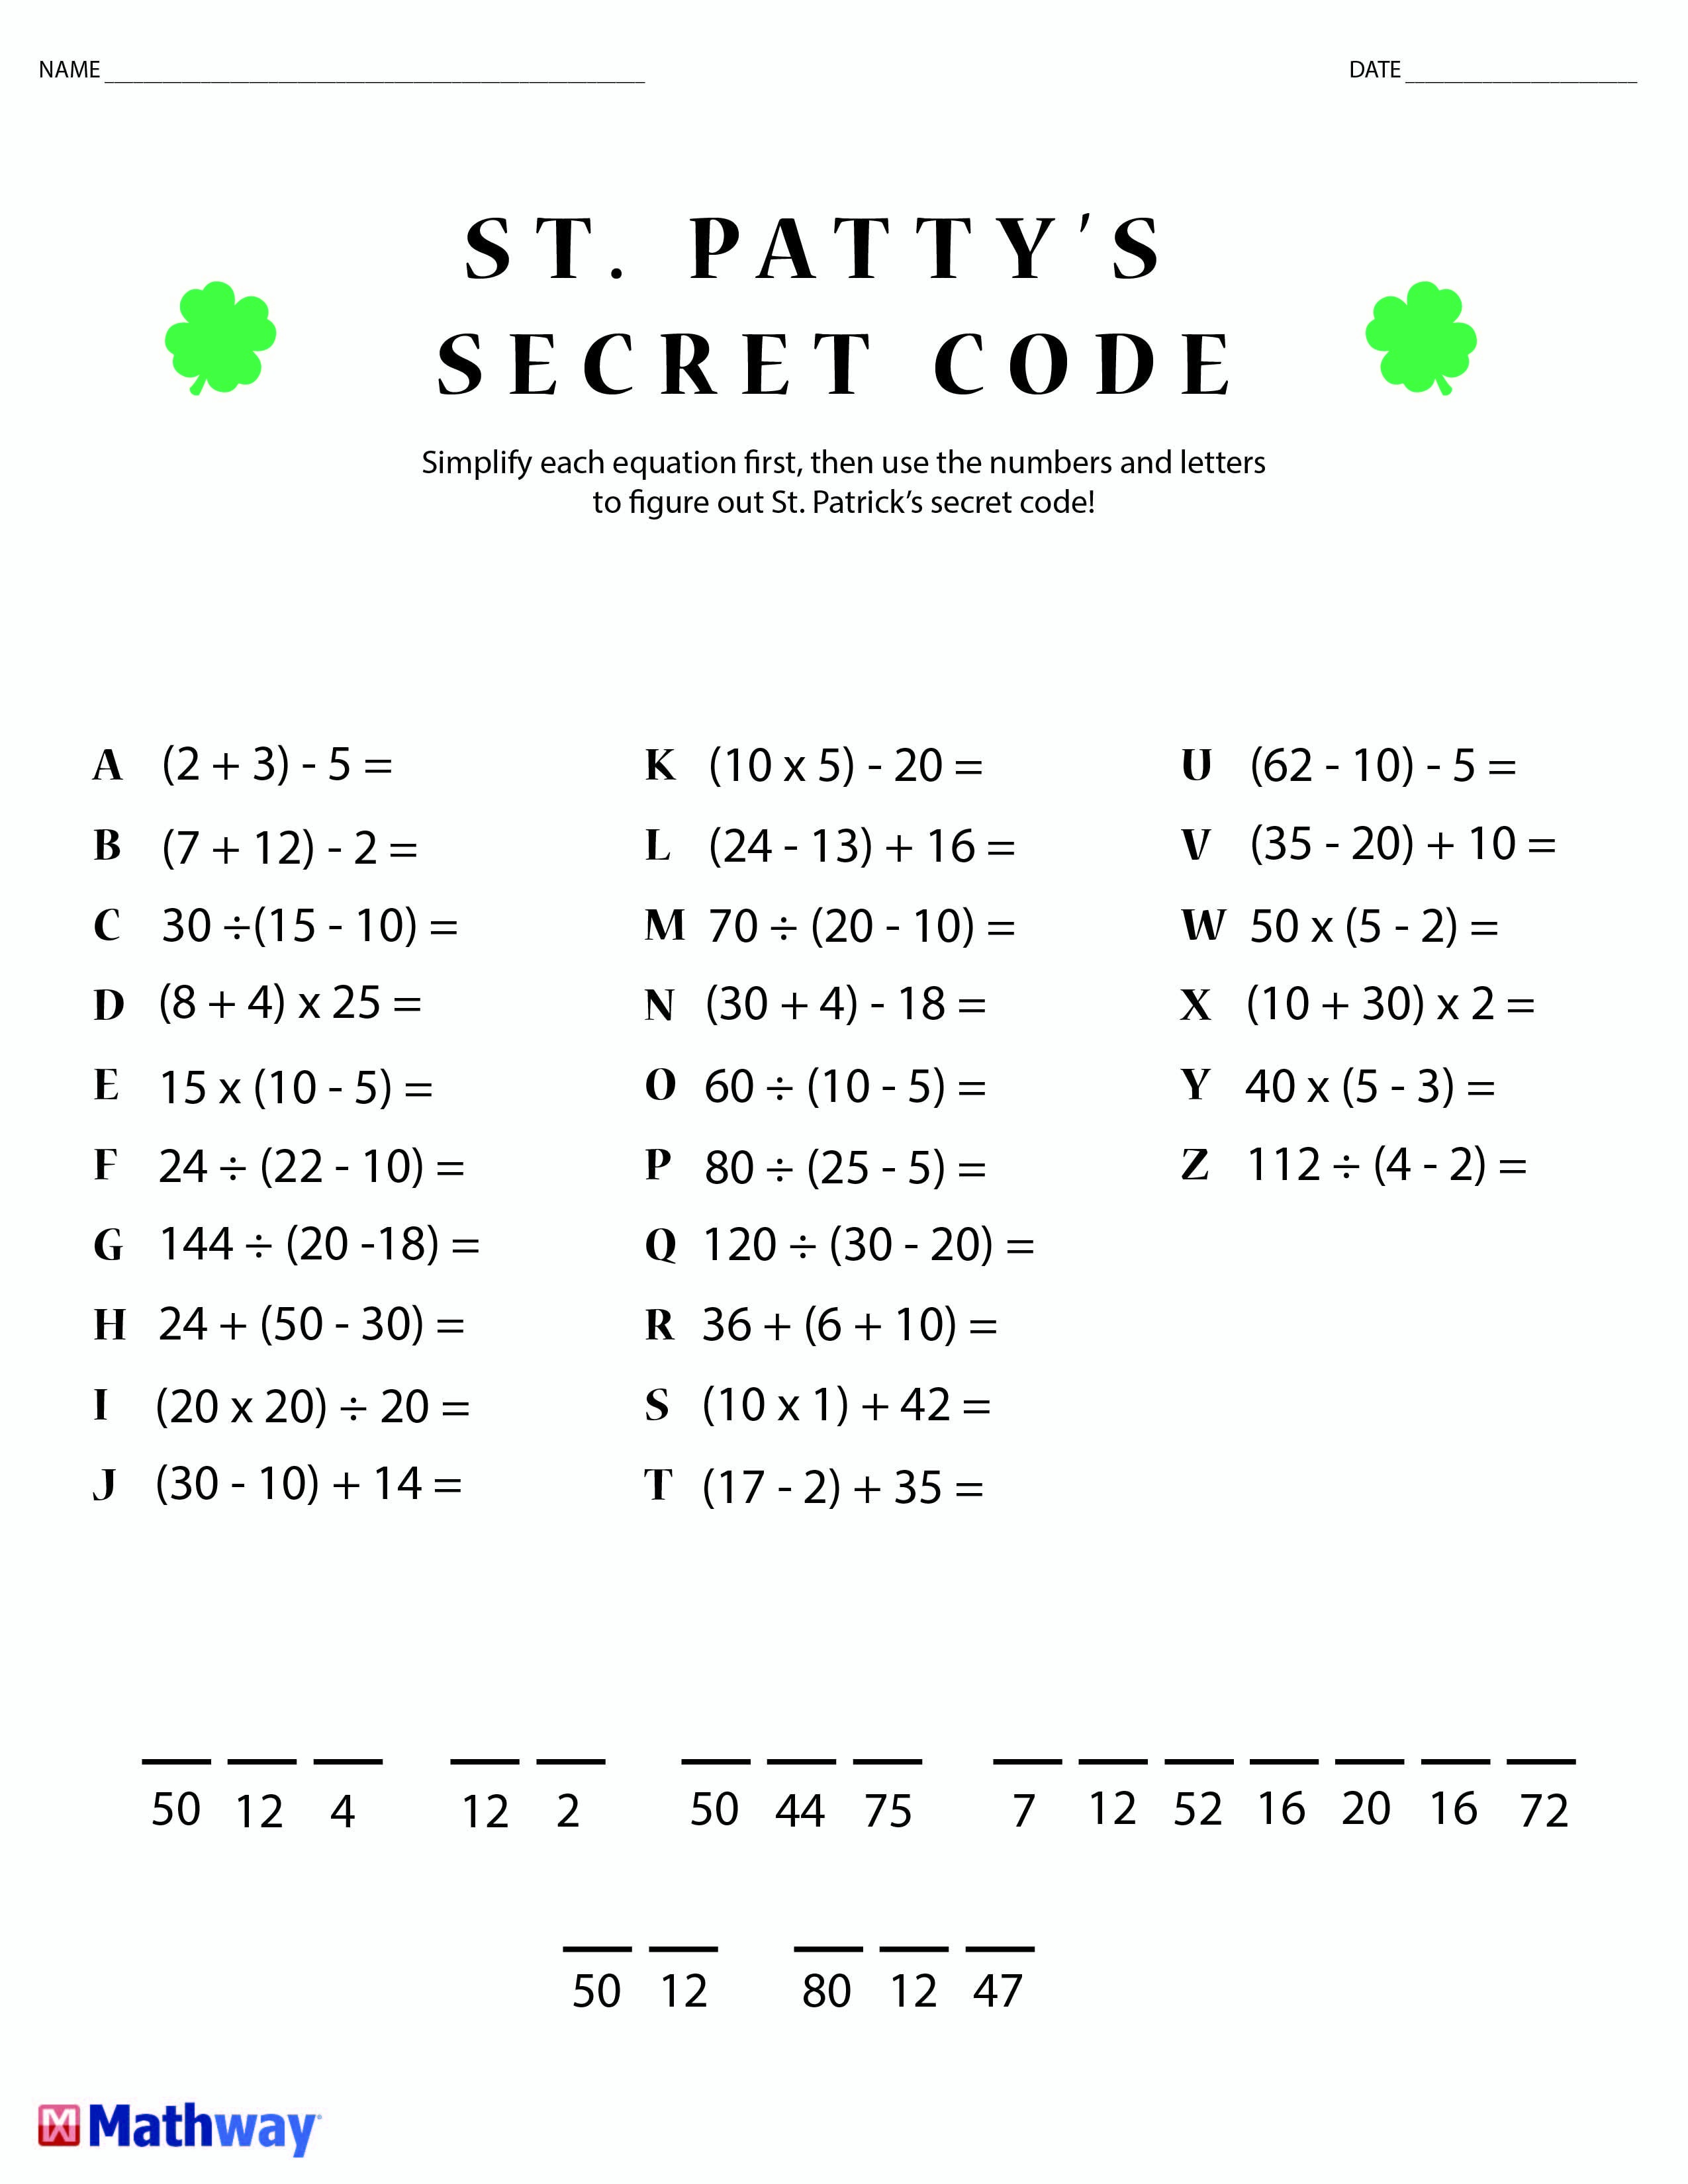 St. Patty's Day Crack The Secret Code Worksheet! Print This One Out - Crack The Code Worksheets Printable Free